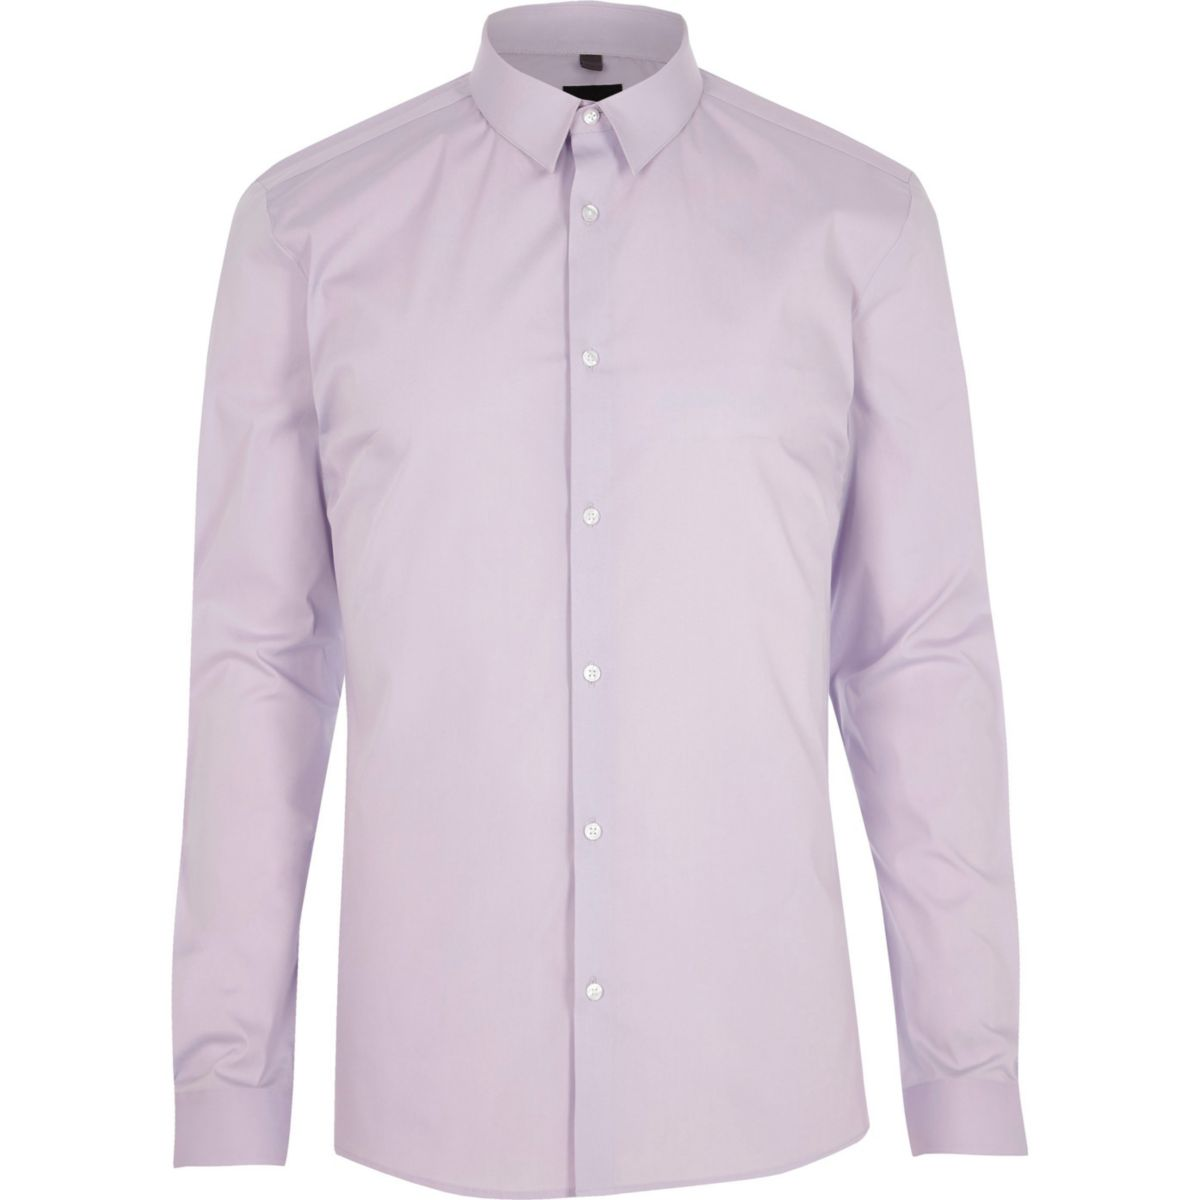 Light purple long sleeve muscle fit shirt